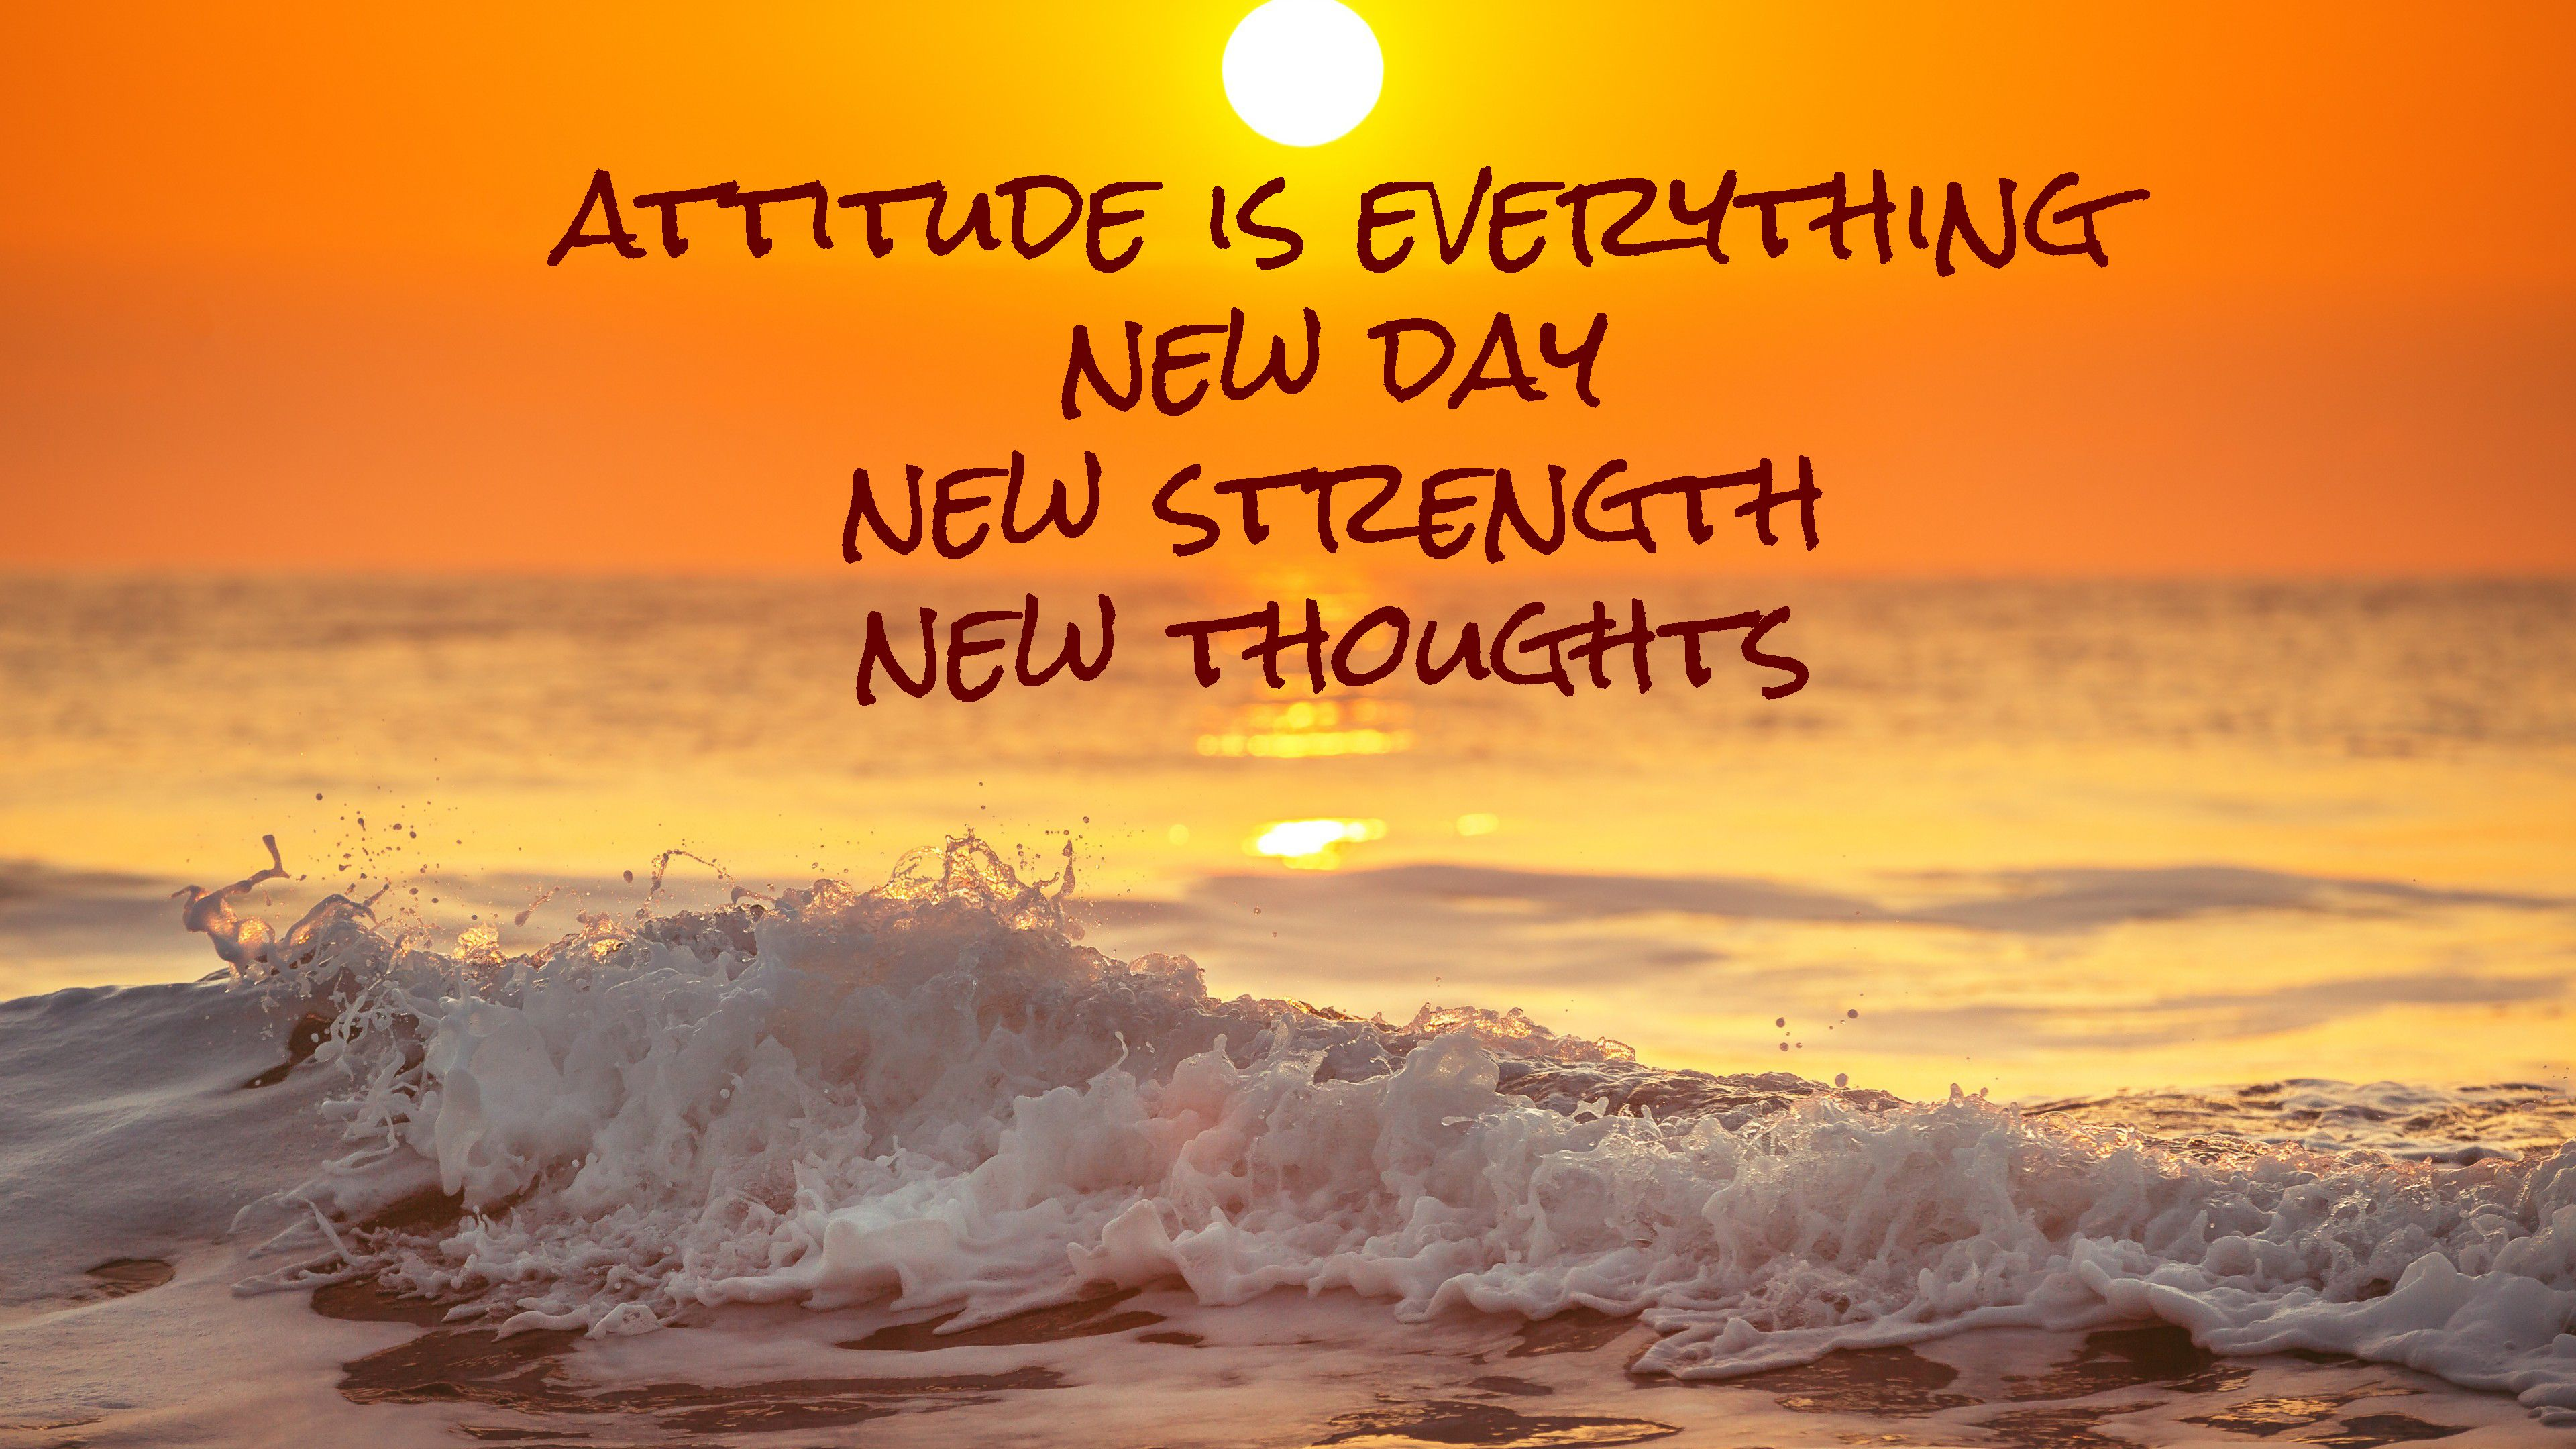 Inspirational quotes Inspirational quotes, Quotes, New day